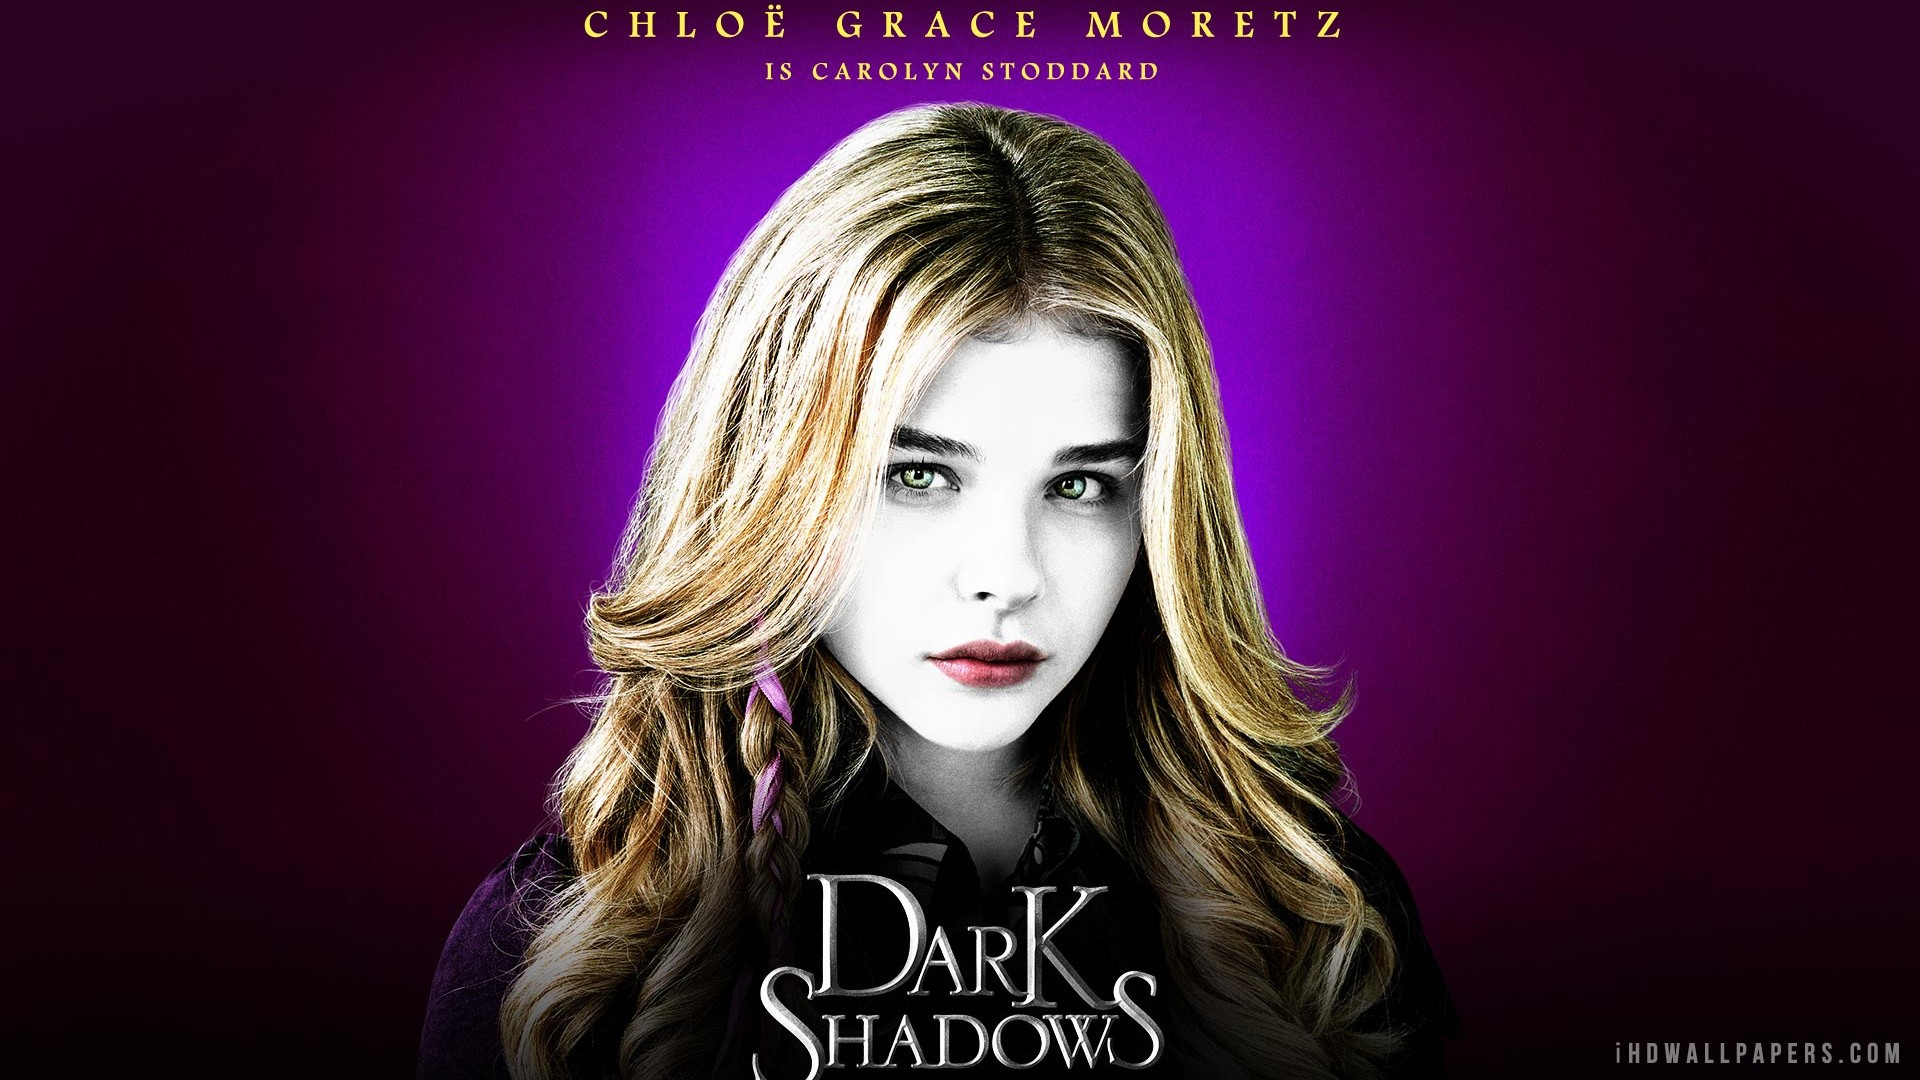 1920x1080 Chloe Moretz in Dark Shadows HD Wallpaper iHD Wallpapers